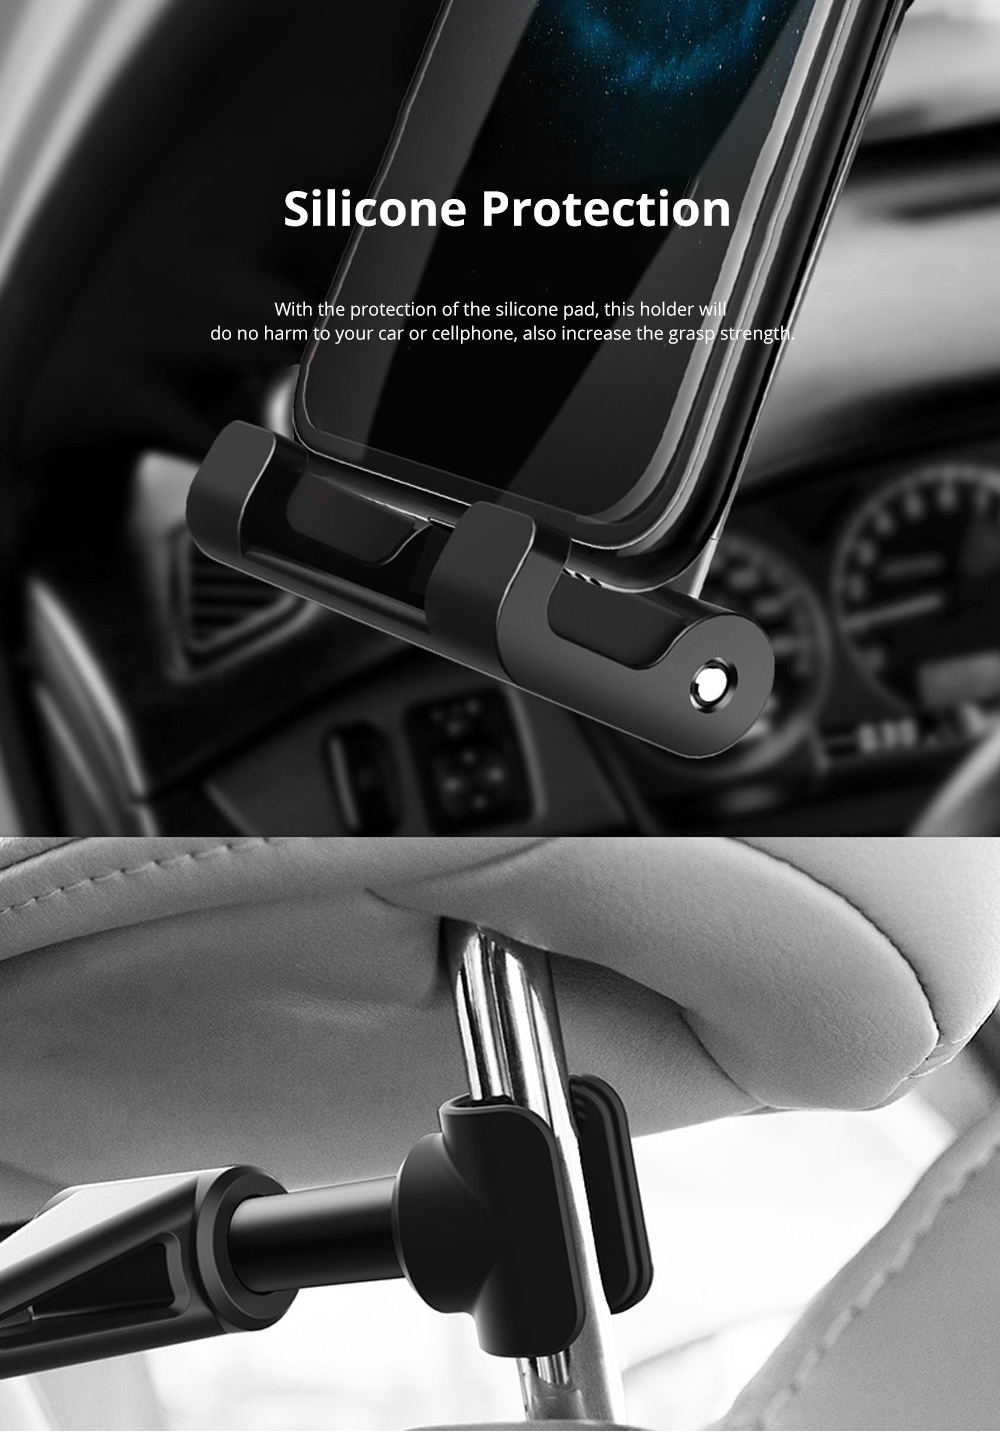 ROCK ABS Aluminium Alloy Material Vehicle-mounted Phone iPad Holder Multiple Functional Universal 4.7 to 12.9 inch Car Headrest Mount Stand 6